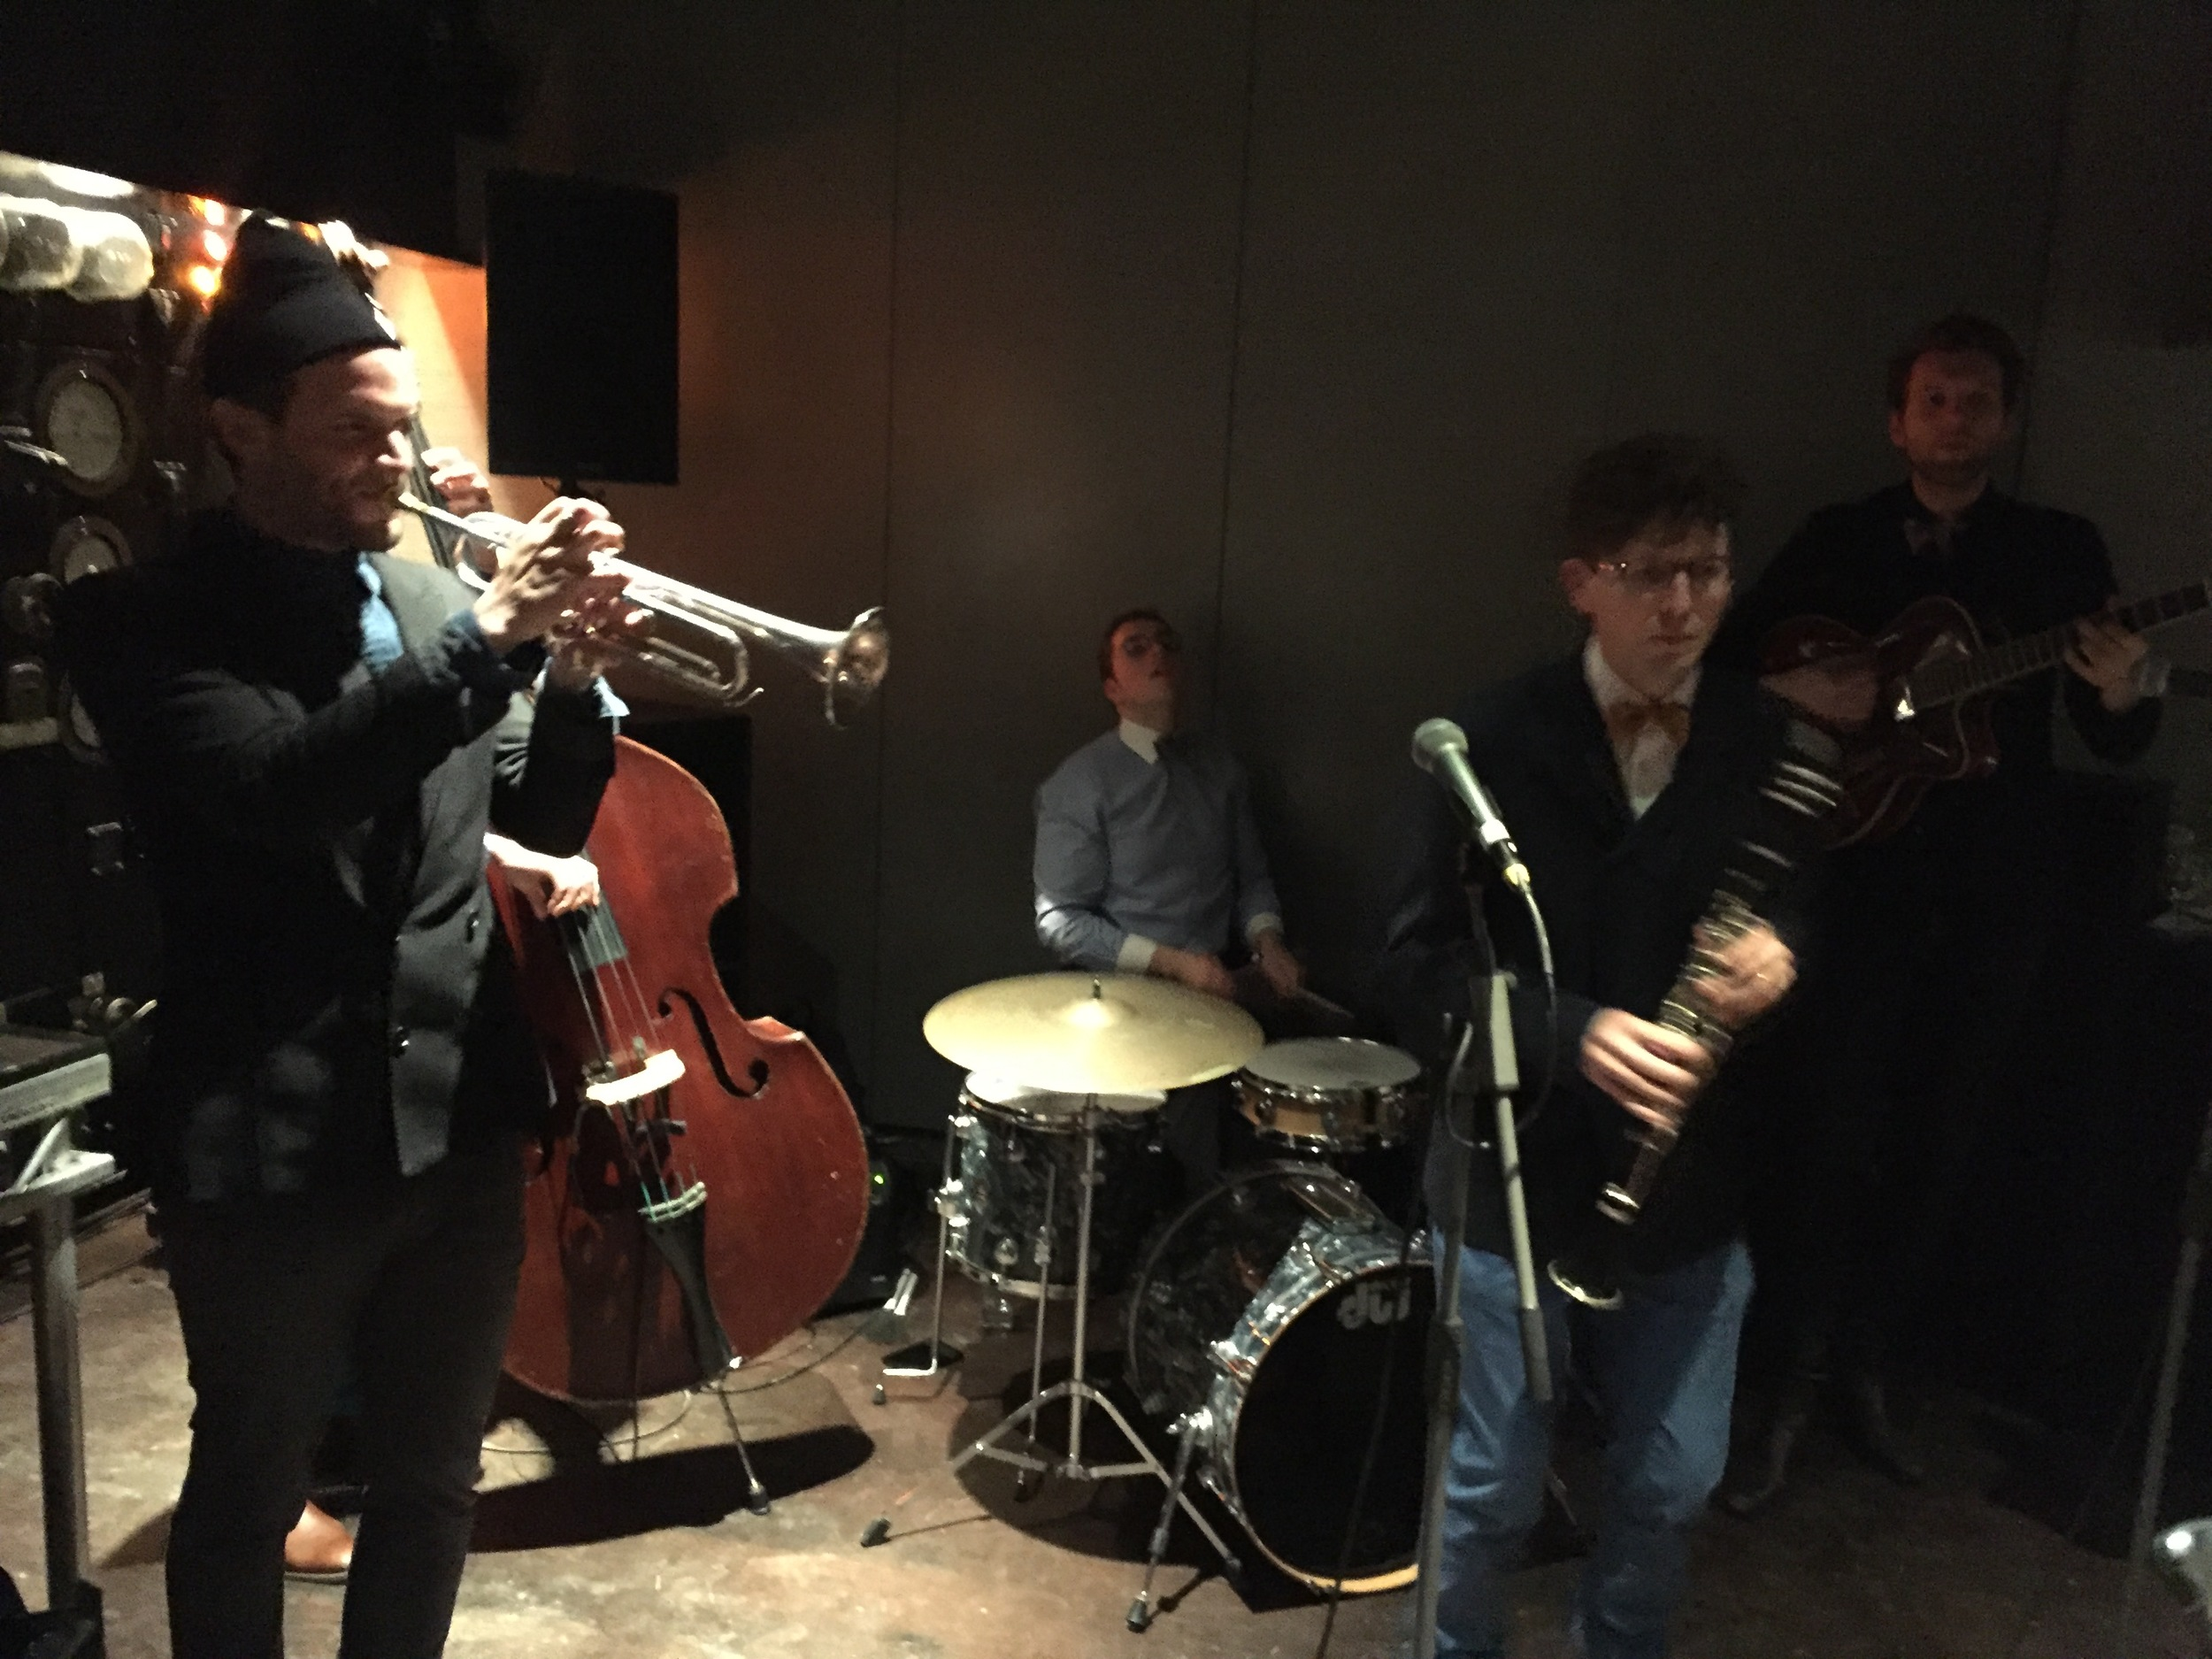 A live band provided 1940s themed music that added to the ambience.